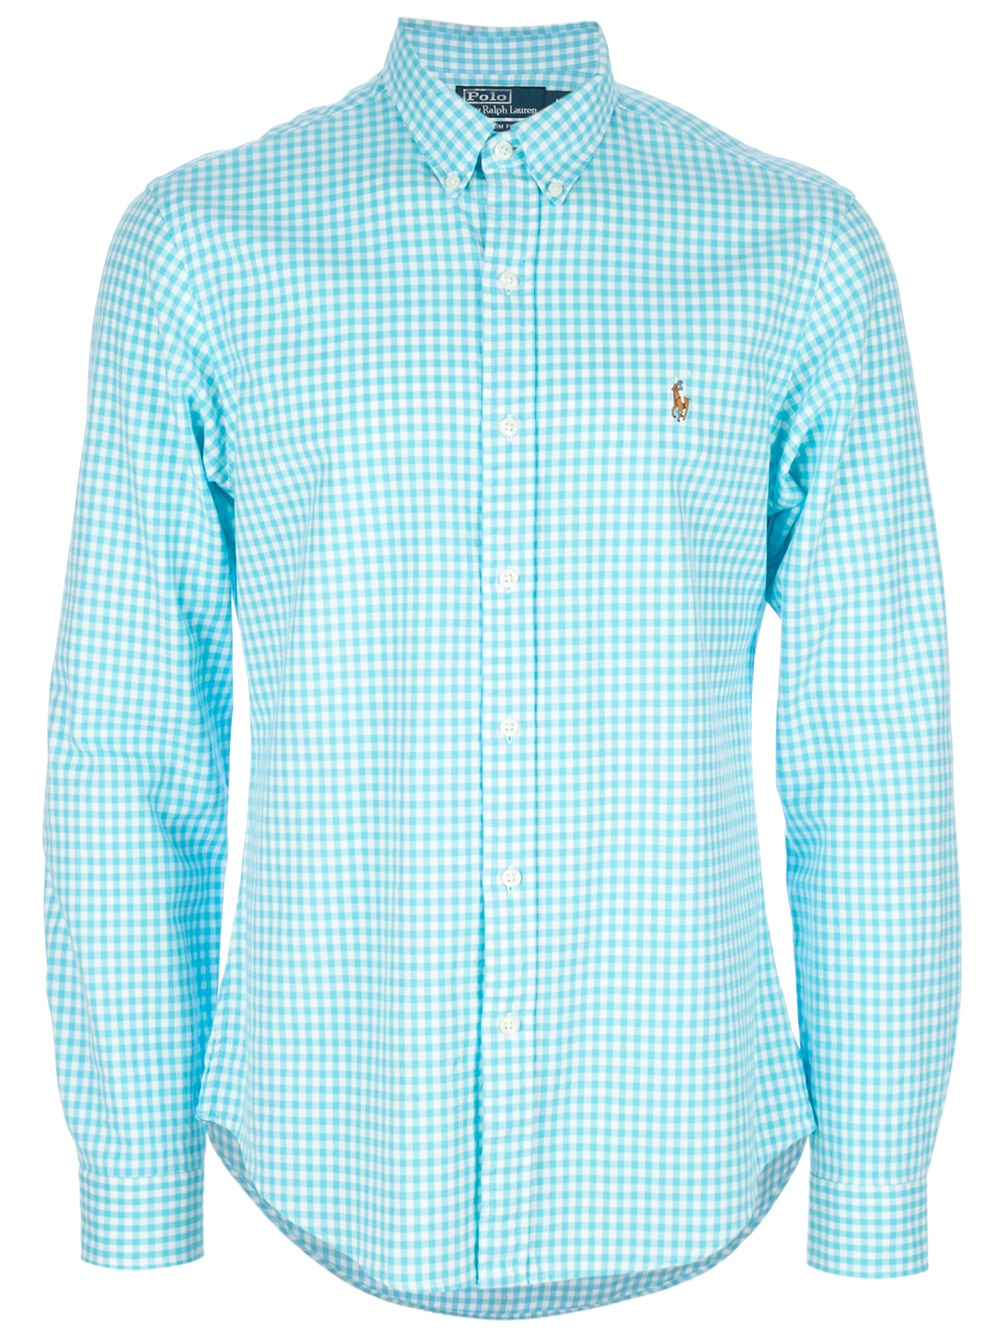 Polo ralph lauren Button Down Checked Shirt in Blue for Men | Lyst